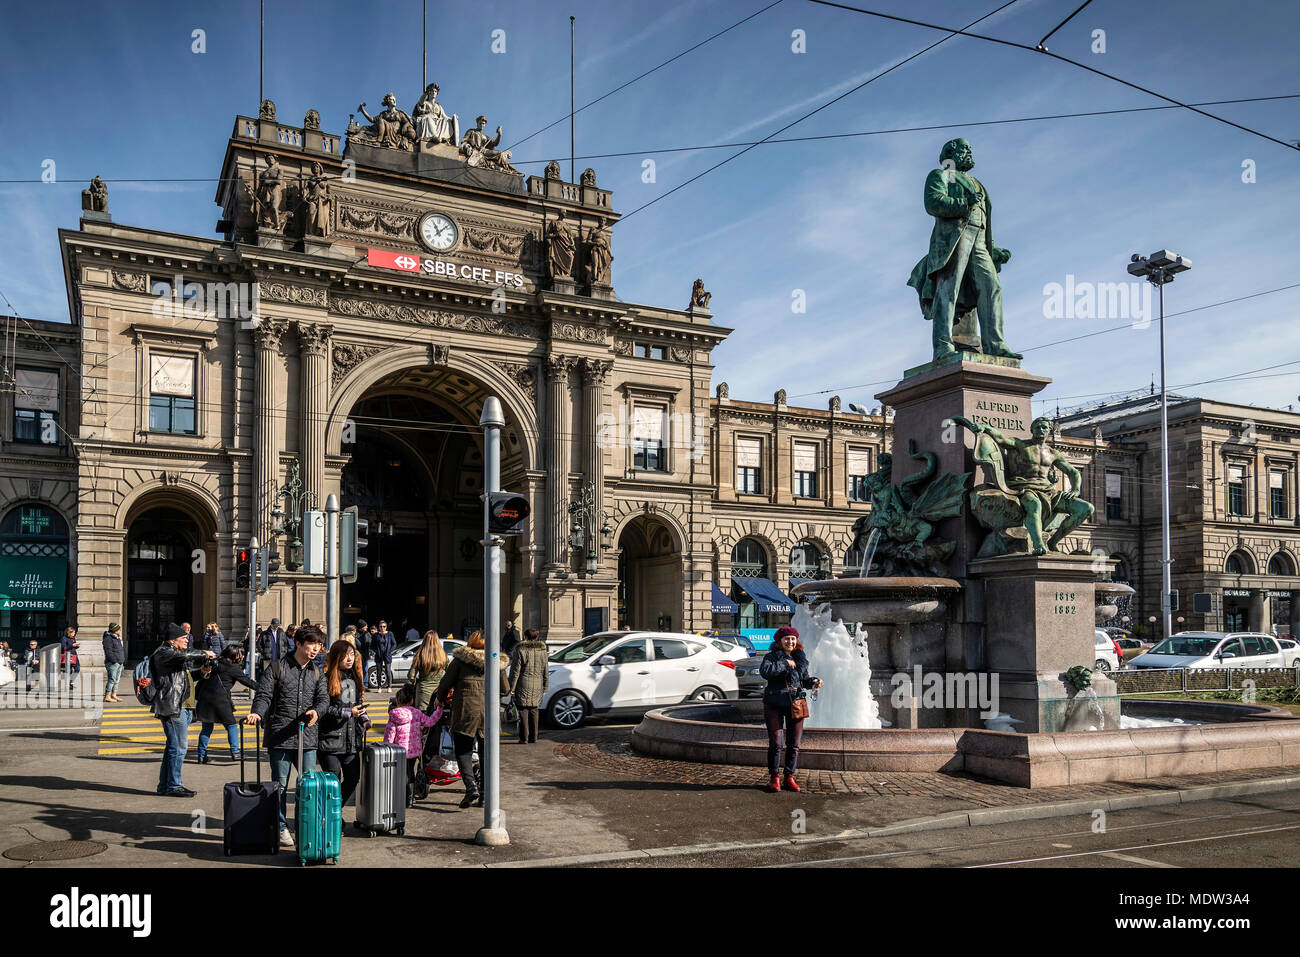 hauptbanhof central railway station landmark in old town of zurich switzerland - Stock Image